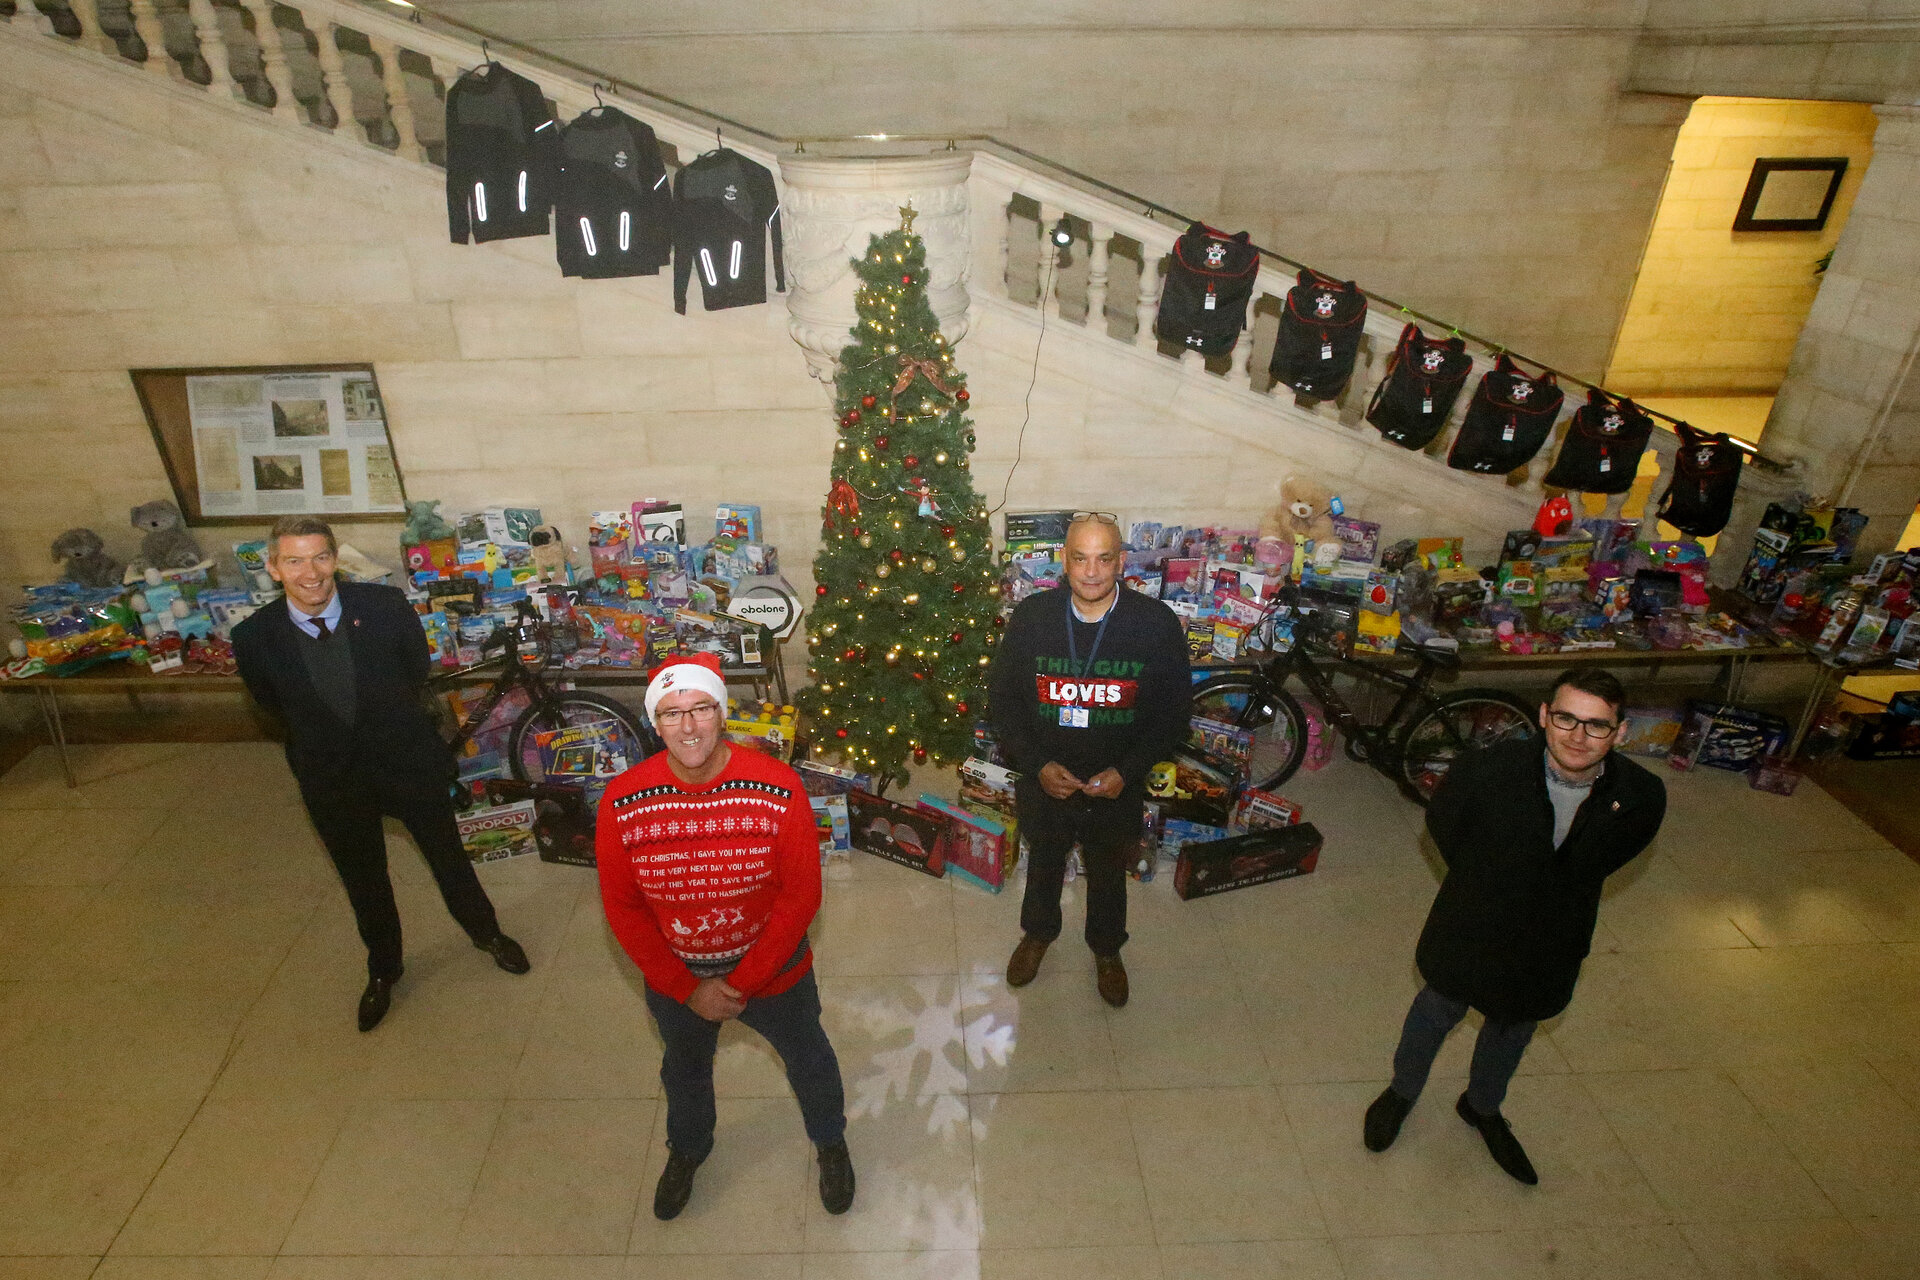 SOUTHAMPTON, ENGLAND - DECEMBER 14: David Thomas(L), Matt Le Tissier and Christopher Hammond(R) at Southampton City Council annual toy donation photographed at Southampton Civic Center on December 14, 2020 in Southampton, England. (Photo by Isabelle Field/Southampton FC via Getty Images)